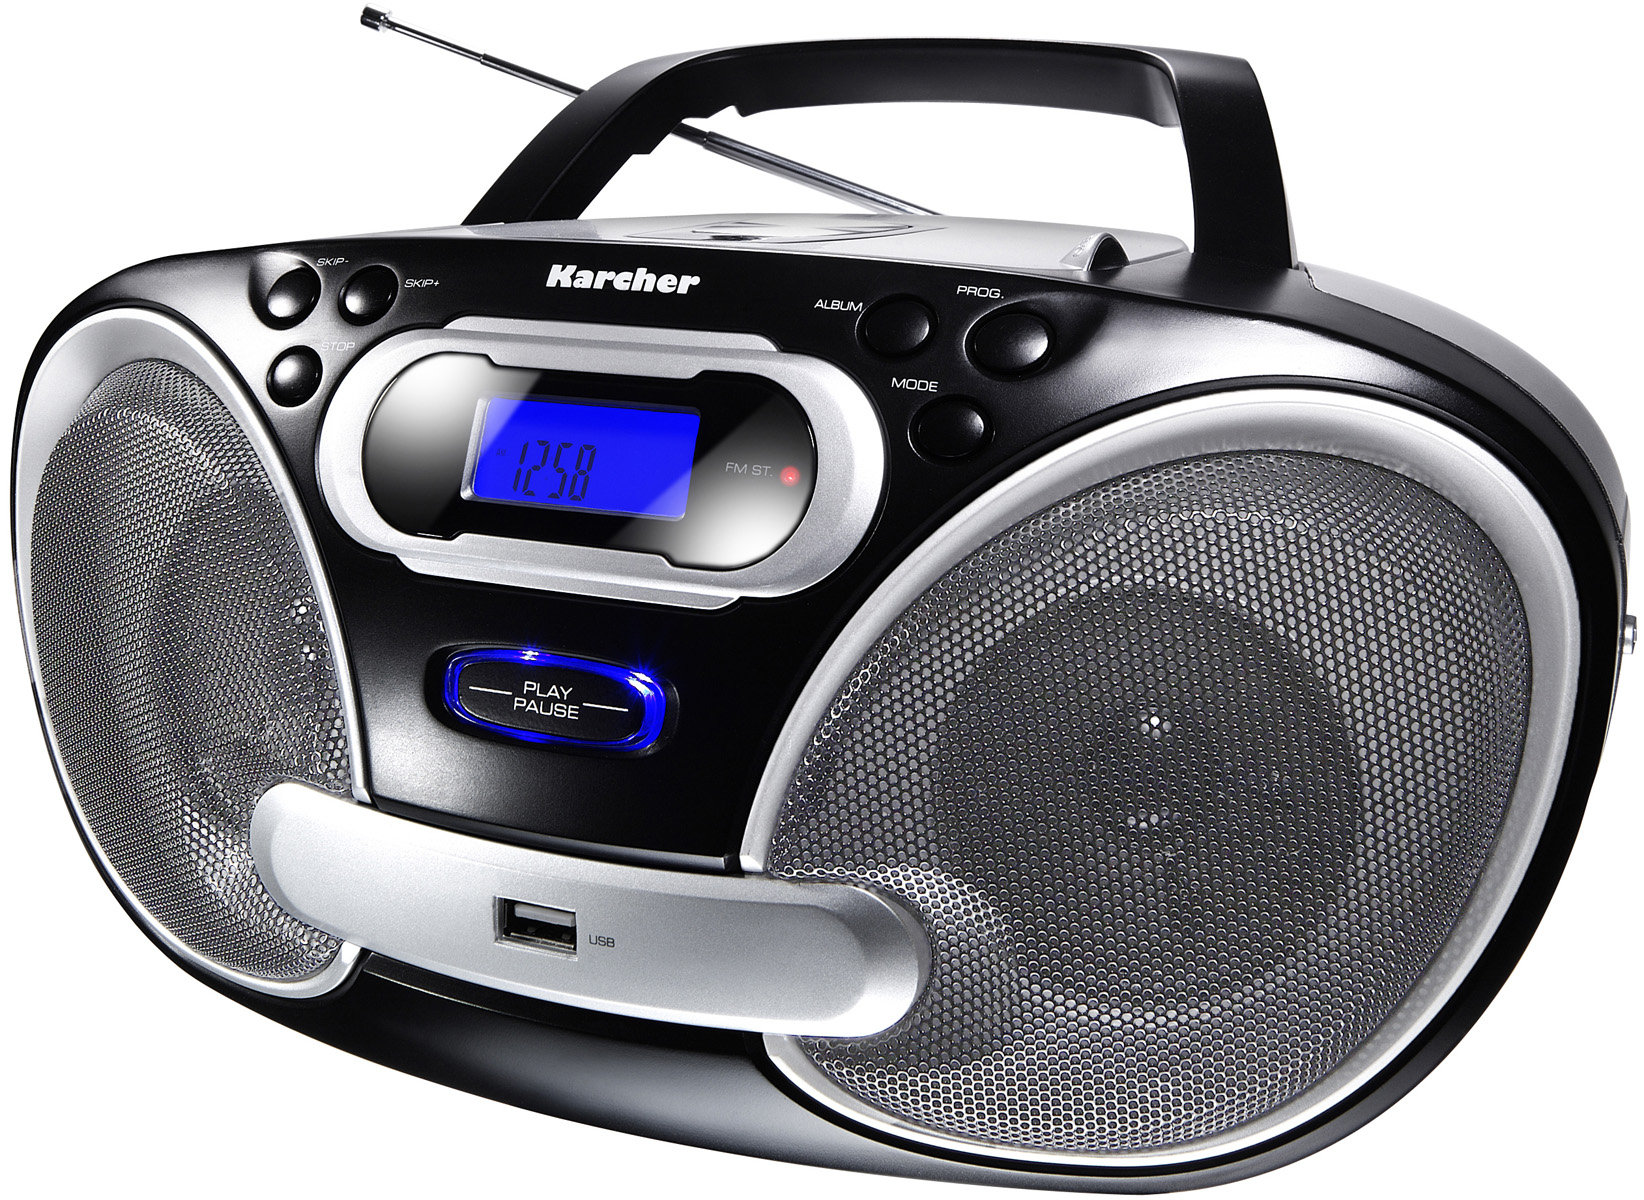 karcher rr5050 tragbares stereo radio cd mp3 player ukw radio usb 2 0 50 watt pmpo. Black Bedroom Furniture Sets. Home Design Ideas